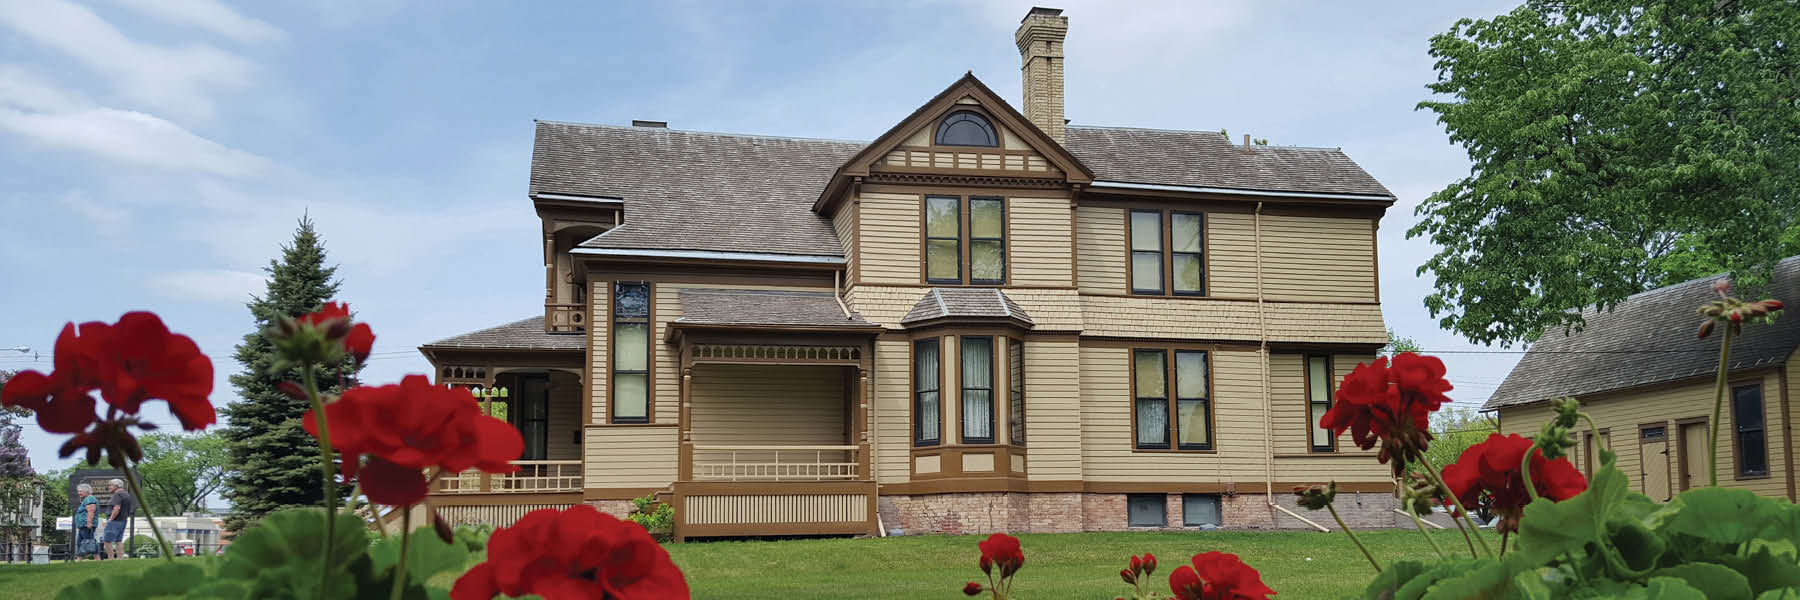 Exterior view of Comstock House against a blue sky and red flowers in foreground.